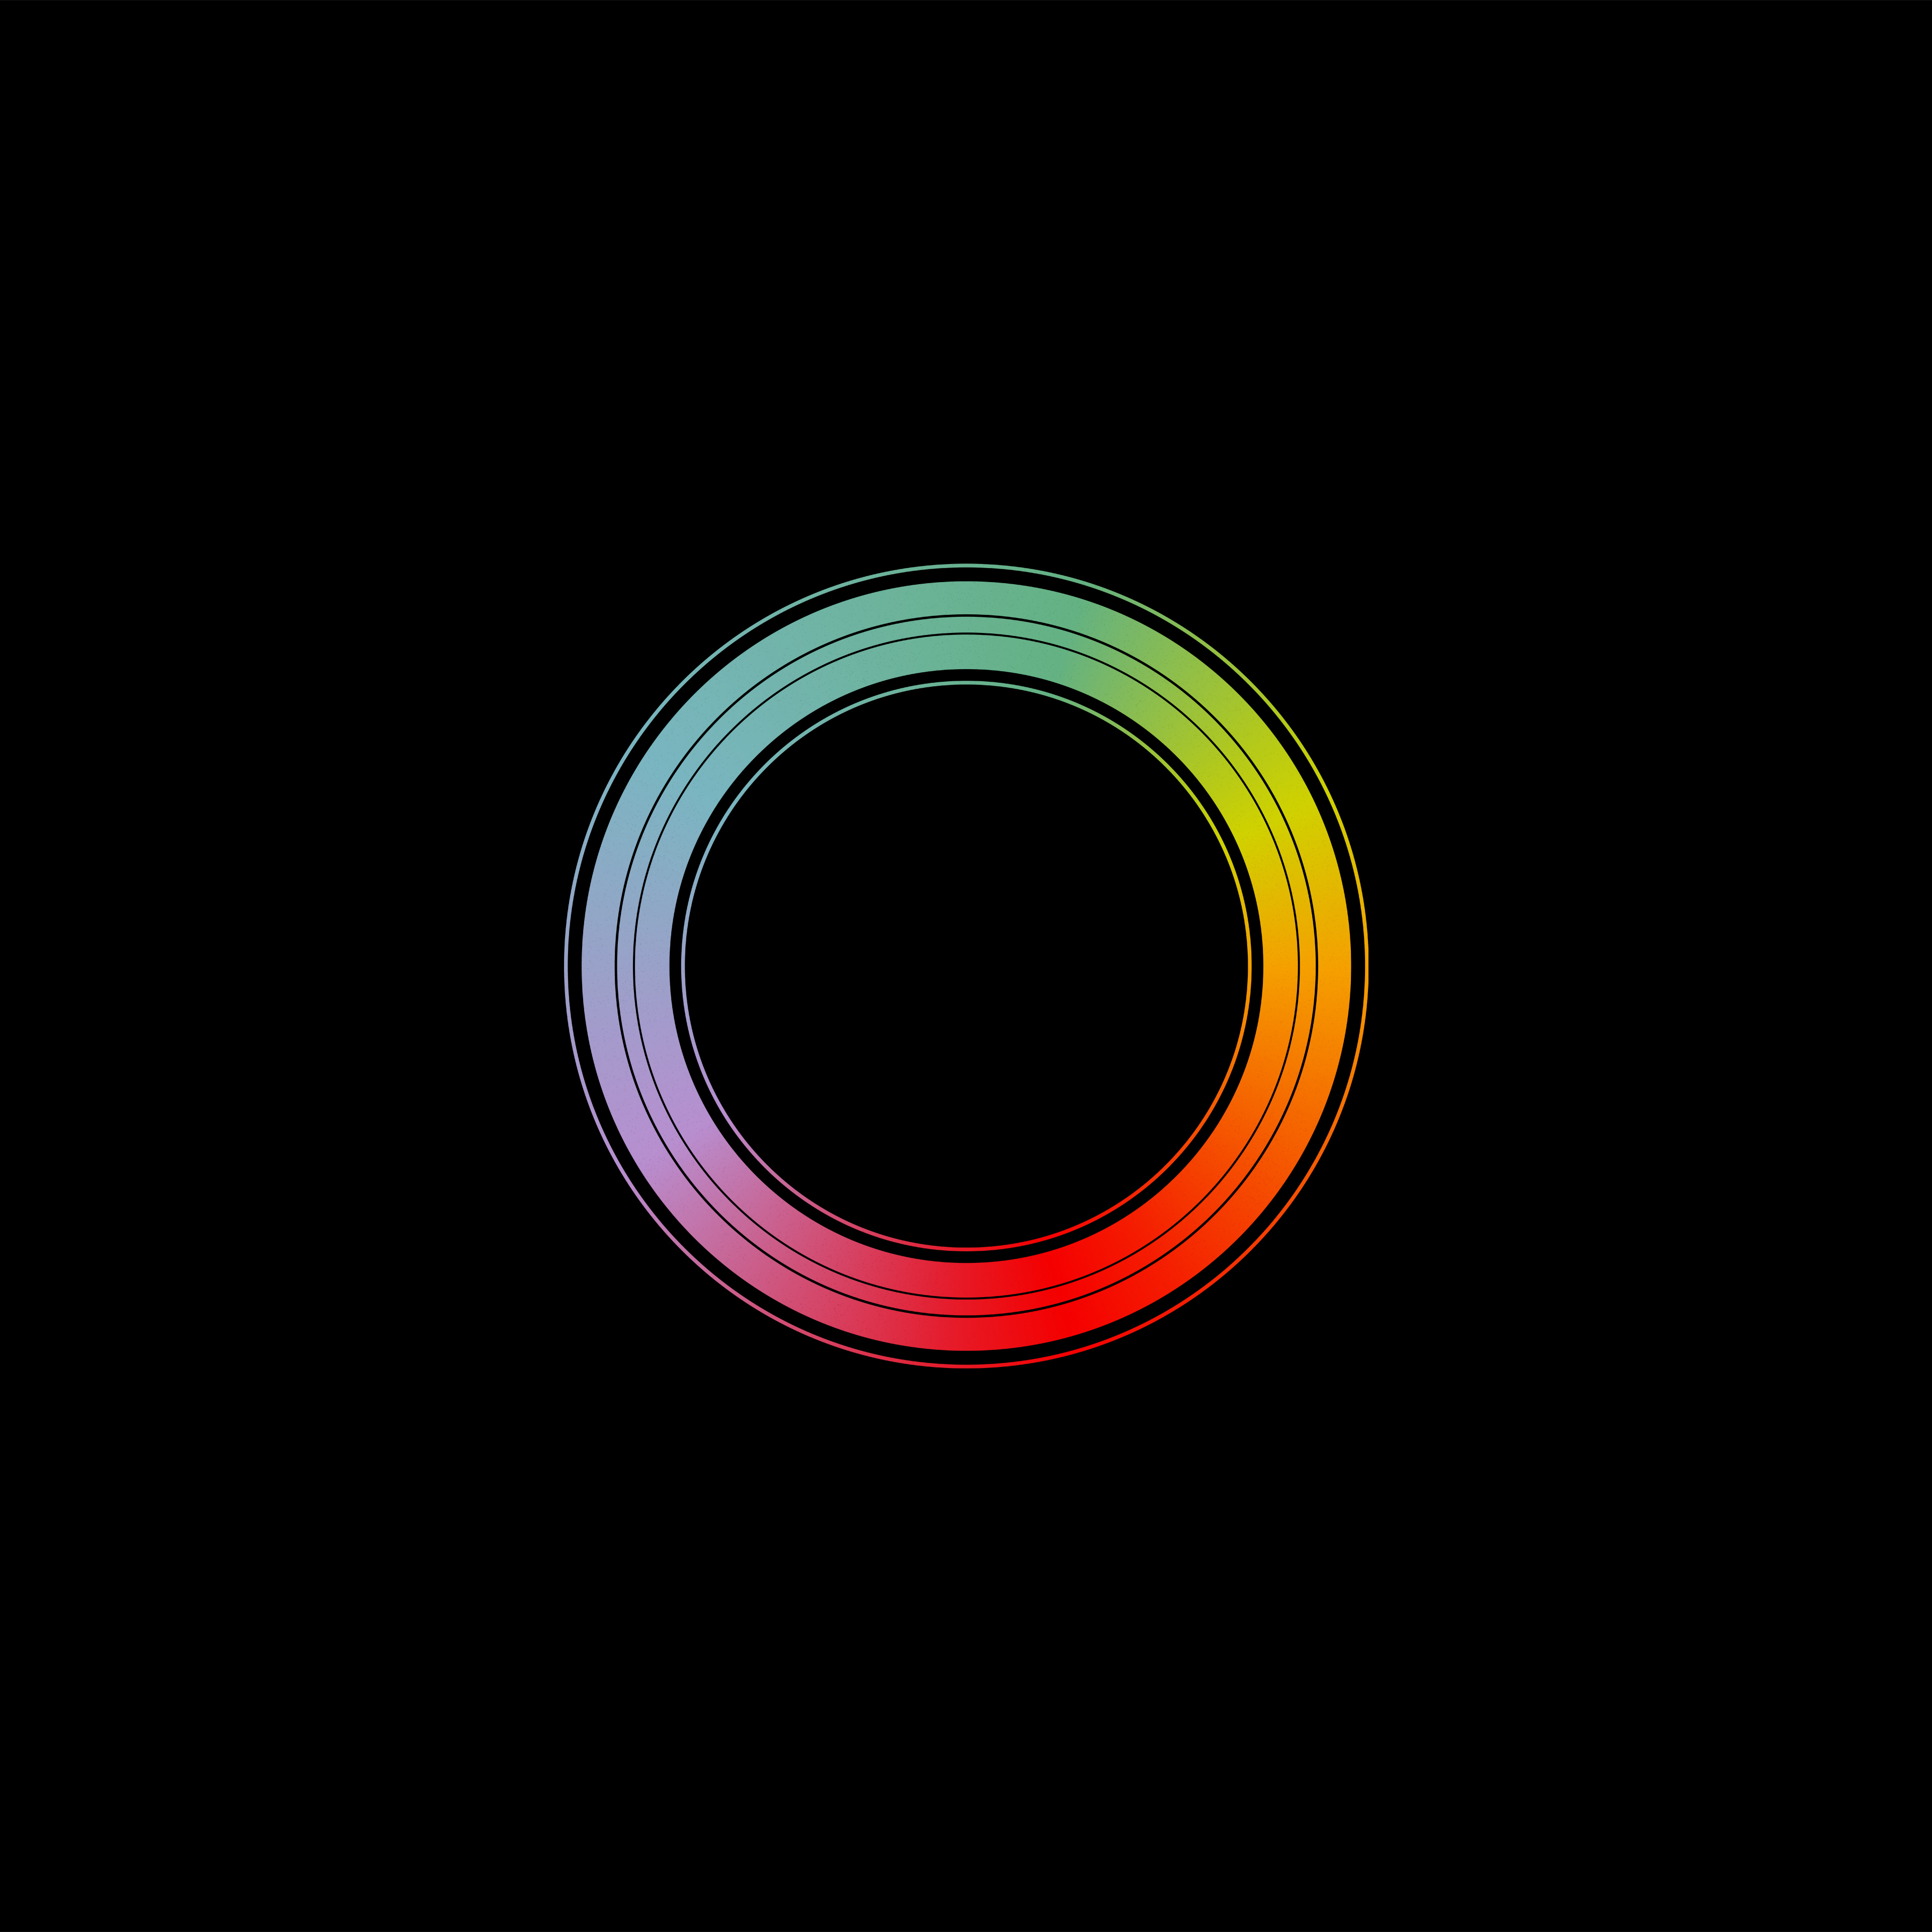 Iphone X Oled Wallpaper Gather Round Apple Event Wallpapers